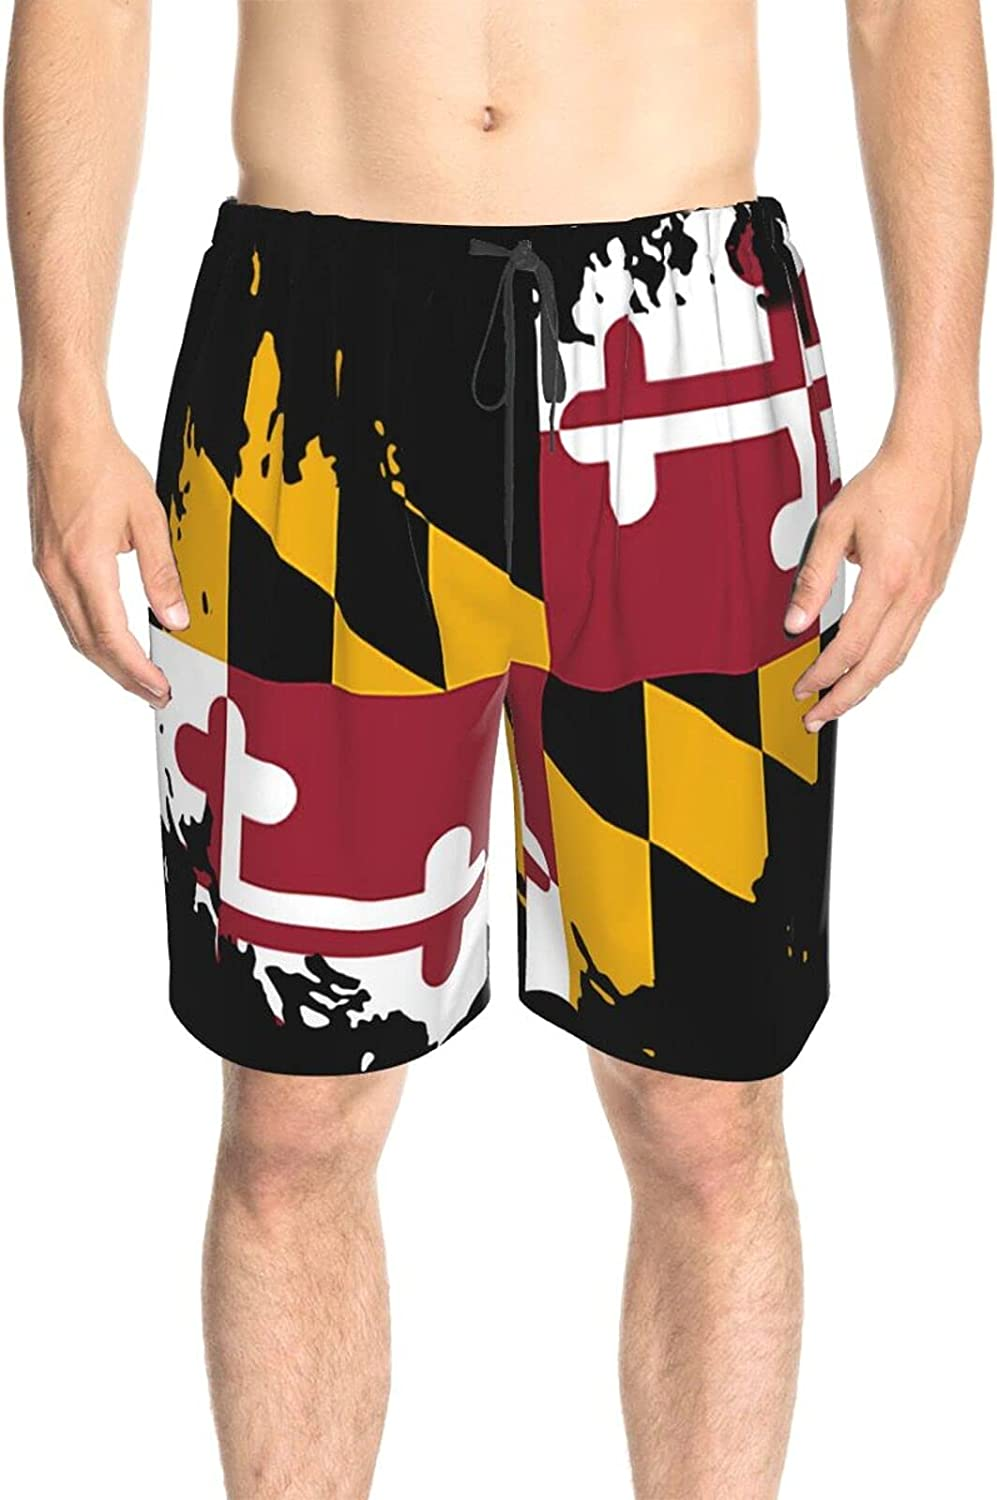 JINJUELS Mens Swim Trunks Maryland State Flag Bathing Suit Boardshorts Quick Dry Comfy Athletic Swimwear Shorts with Liner